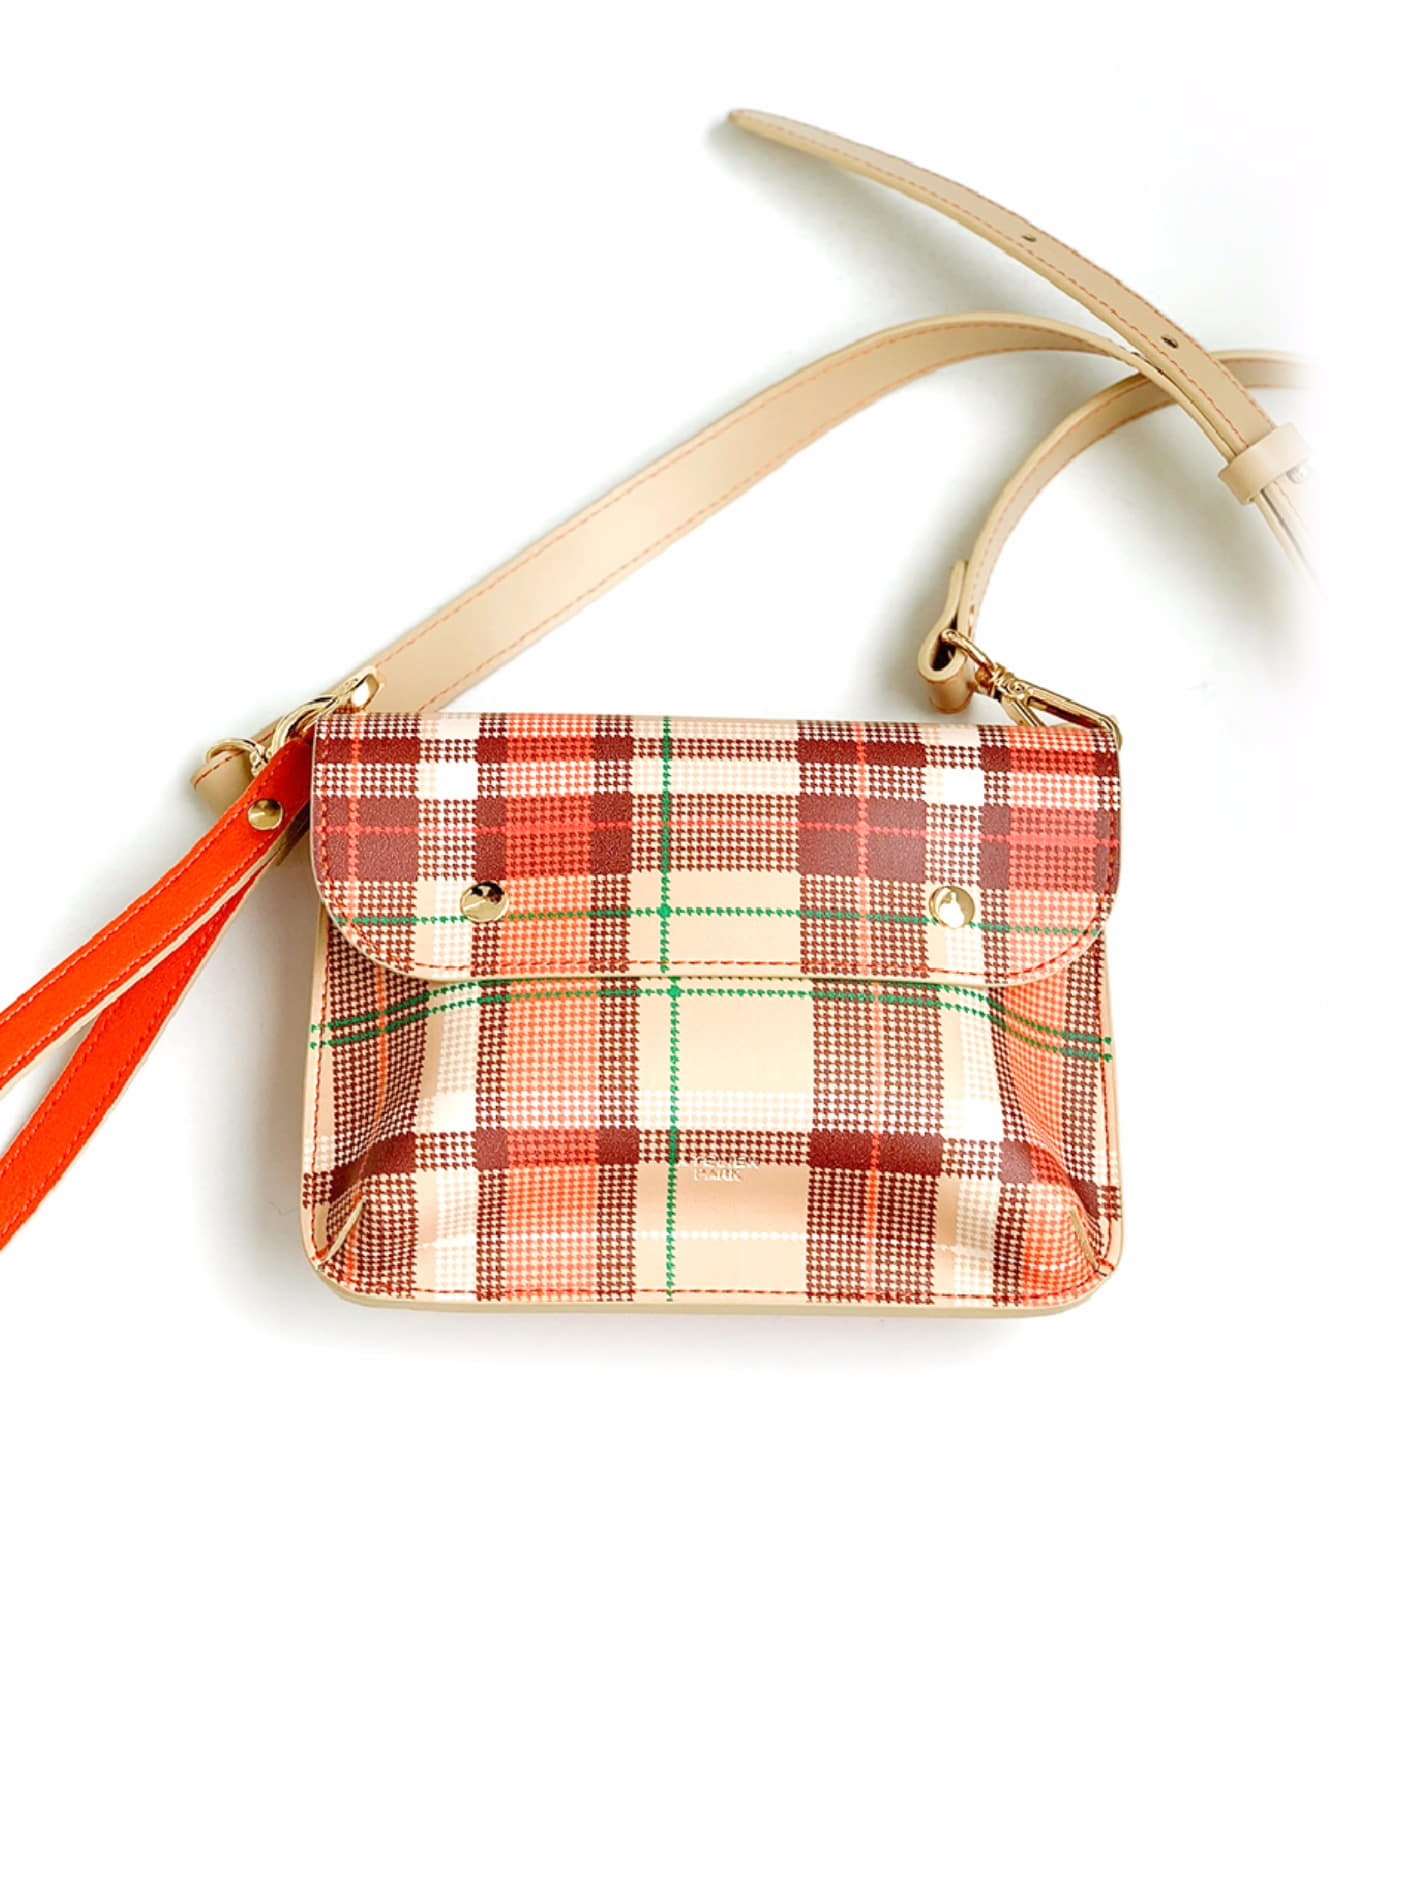 DOUBLE SIDE BAG_BEIGE CHECK / 재입고 예정 없음